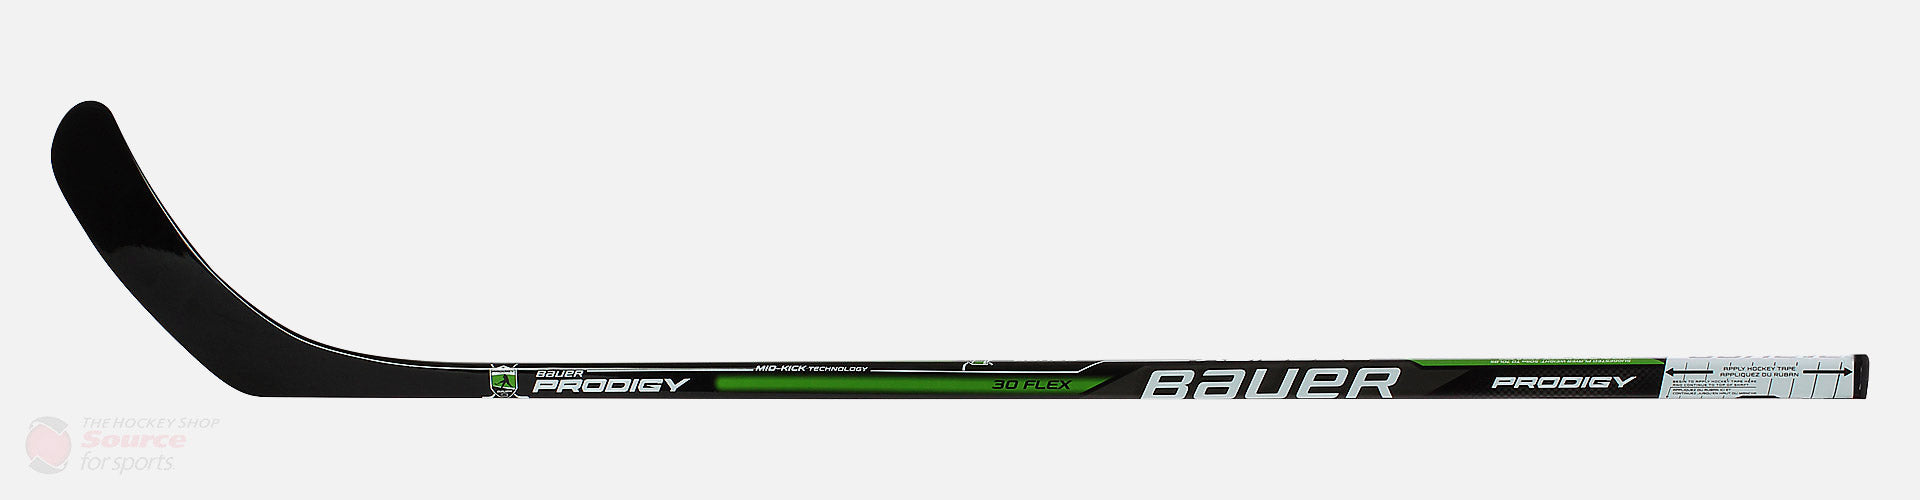 Bauer Prodigy Youth Hockey Stick (2016) - 42""